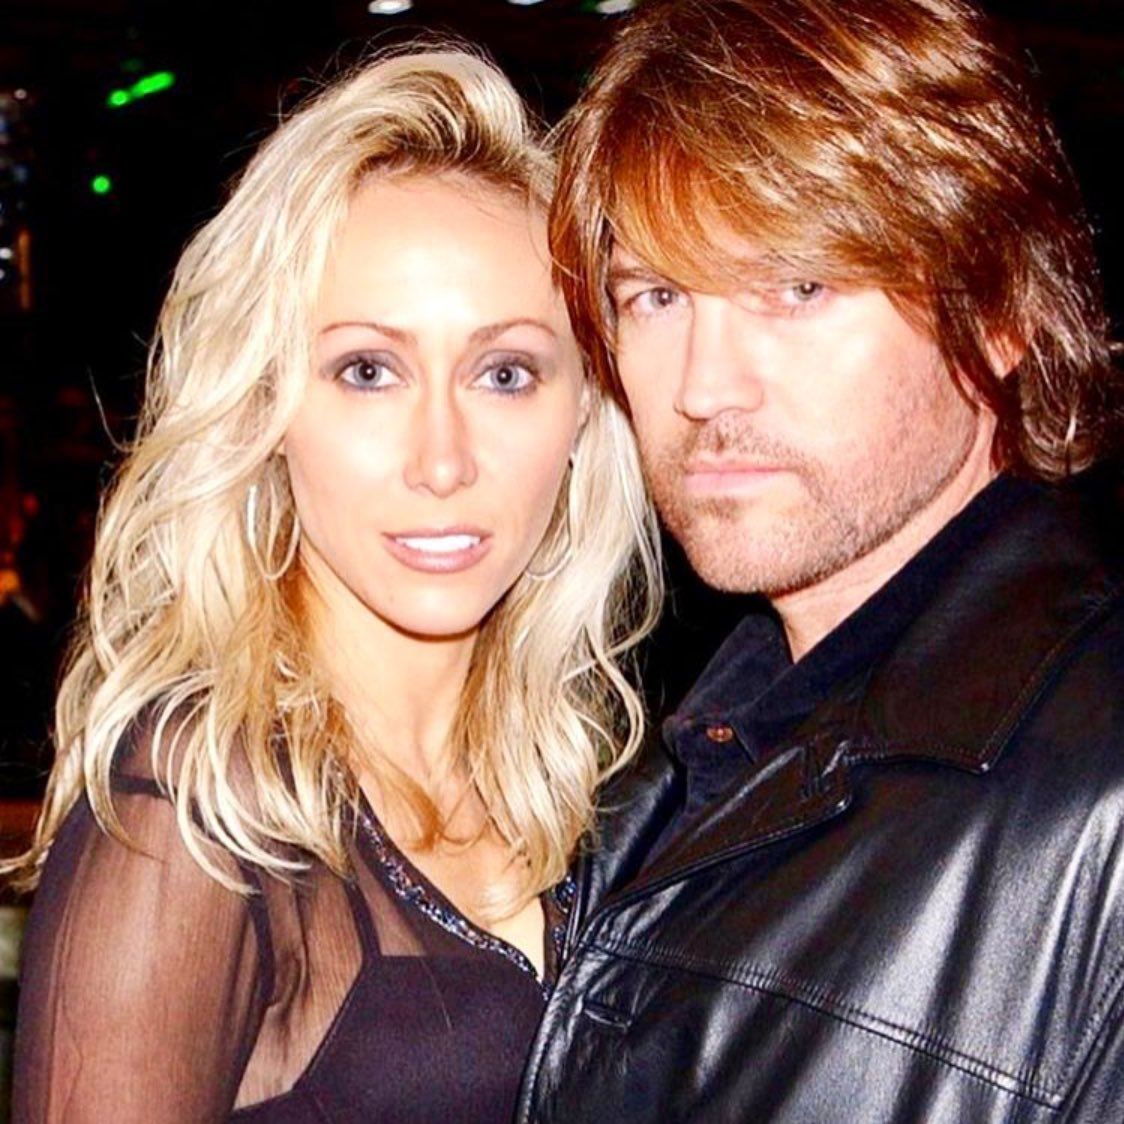 Happy anniversary to my cute ass parents! Love u @tishcyrus @billyraycyrus https://t.co/XegrB98WsI